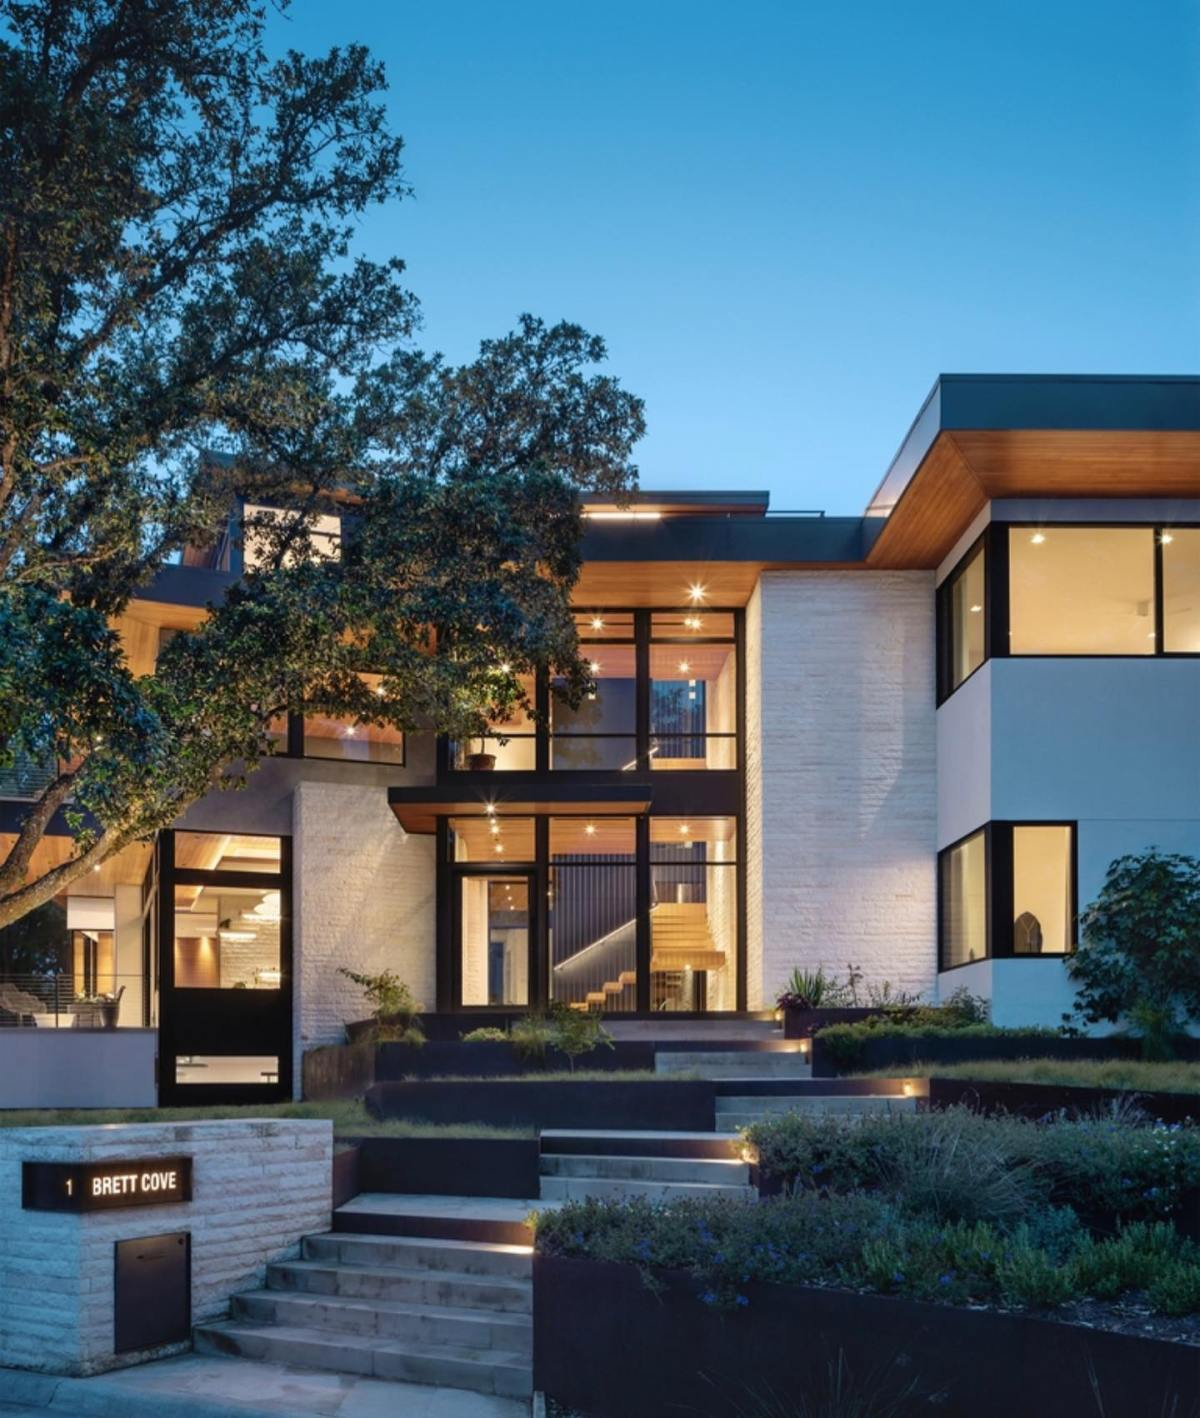 So grateful for clients who appreciate beautiful architecture and quality construction. To be a part of this collaborative process is very rewarding.